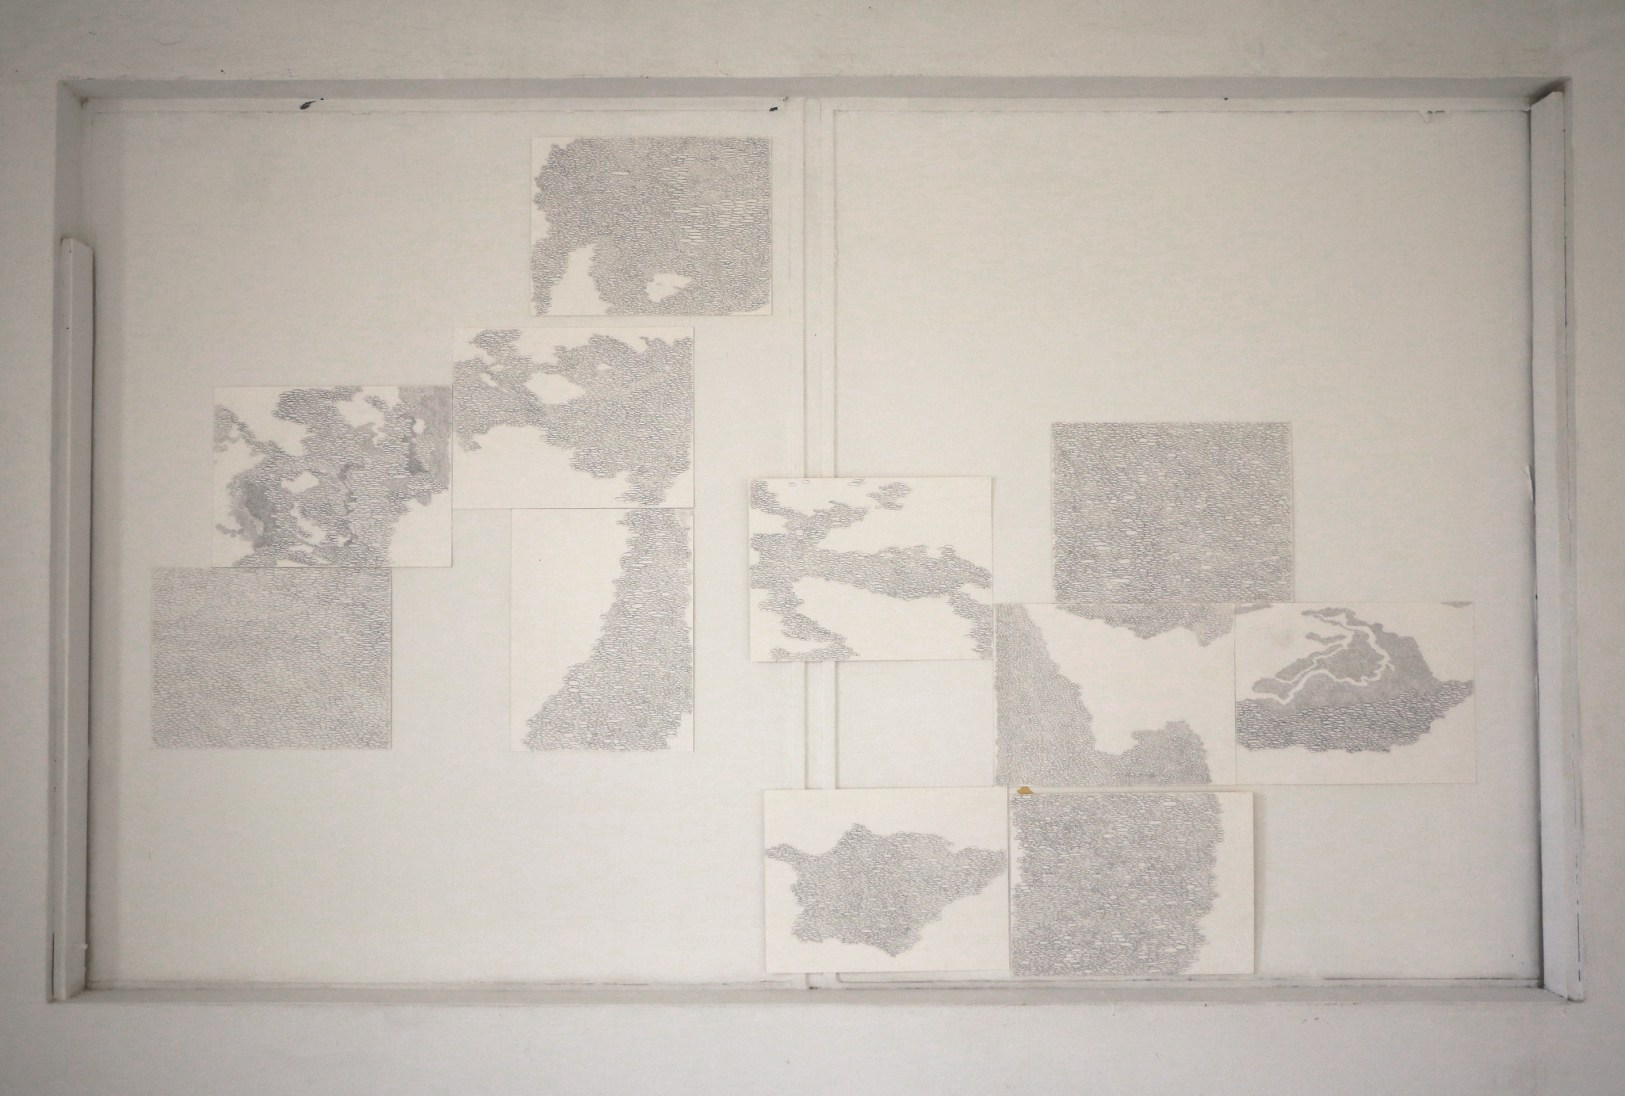 37f2e5c1358 Untitled 1 (Ateliers '89), Graphite on paper, 11 sheets (polyptych